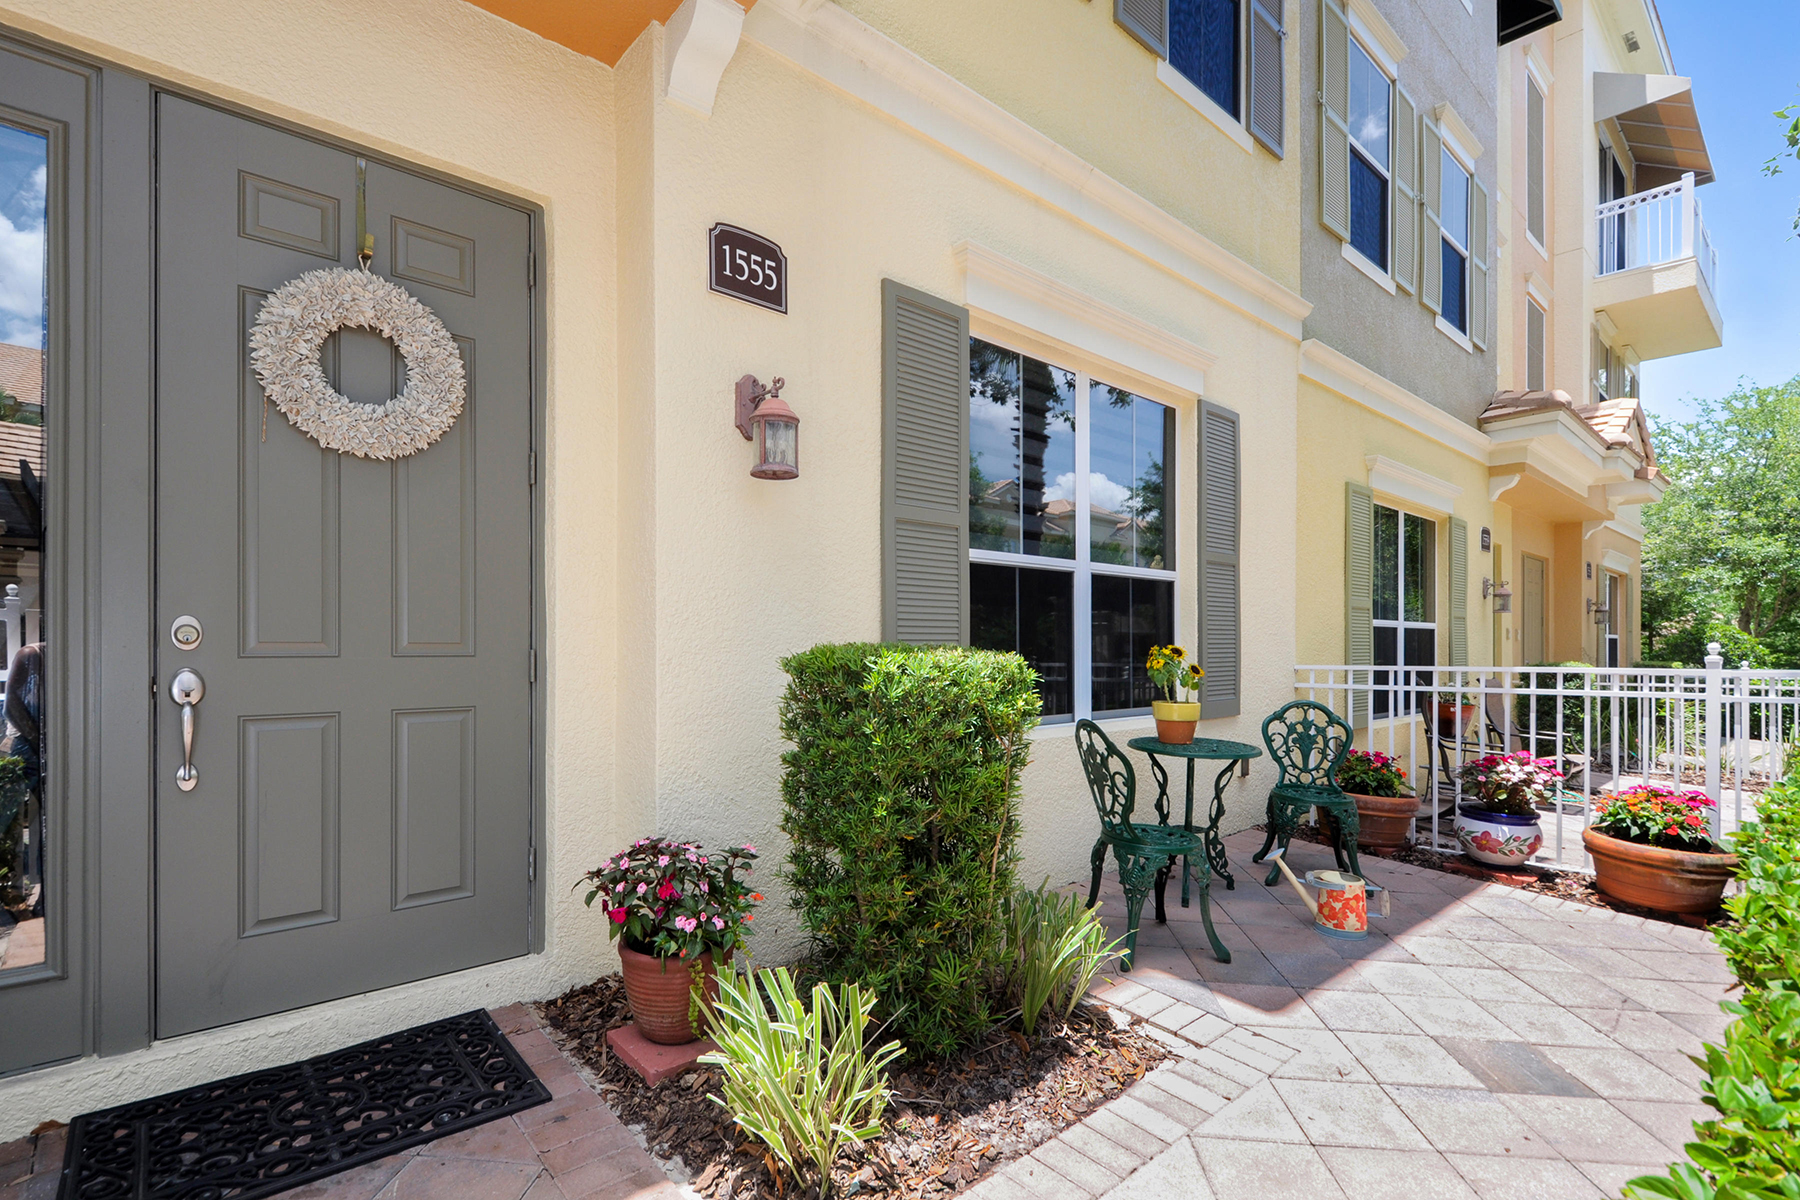 Townhouse for Sale at ORLANDO - LAKE MARY 1555 Ring Plover Way Lake Mary, Florida, 32746 United States